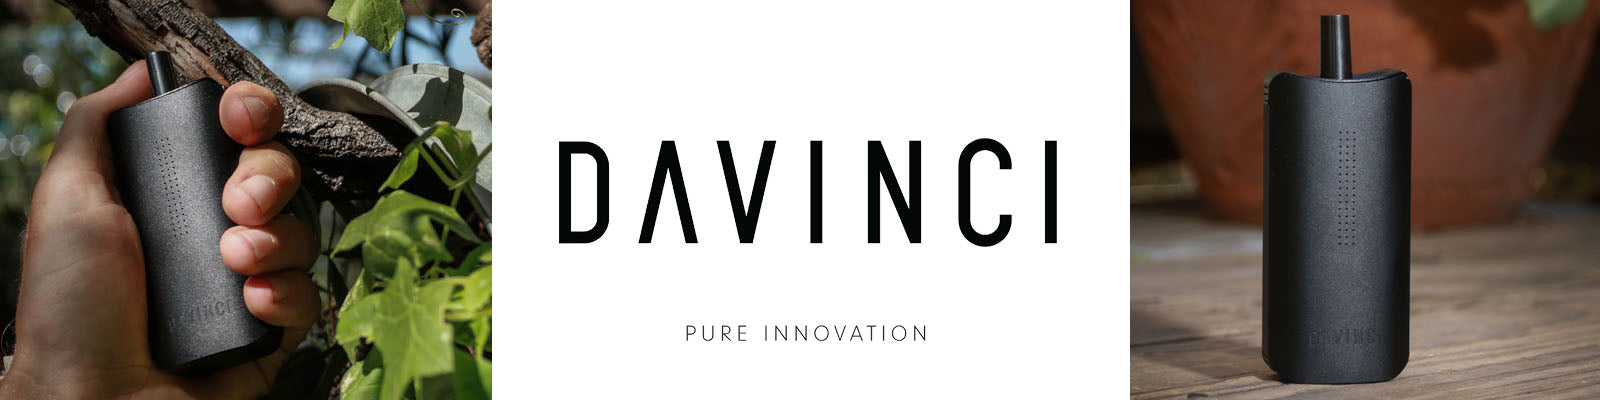 DaVinci IQ Vaporizers UK Free Shipping Authorized sellers